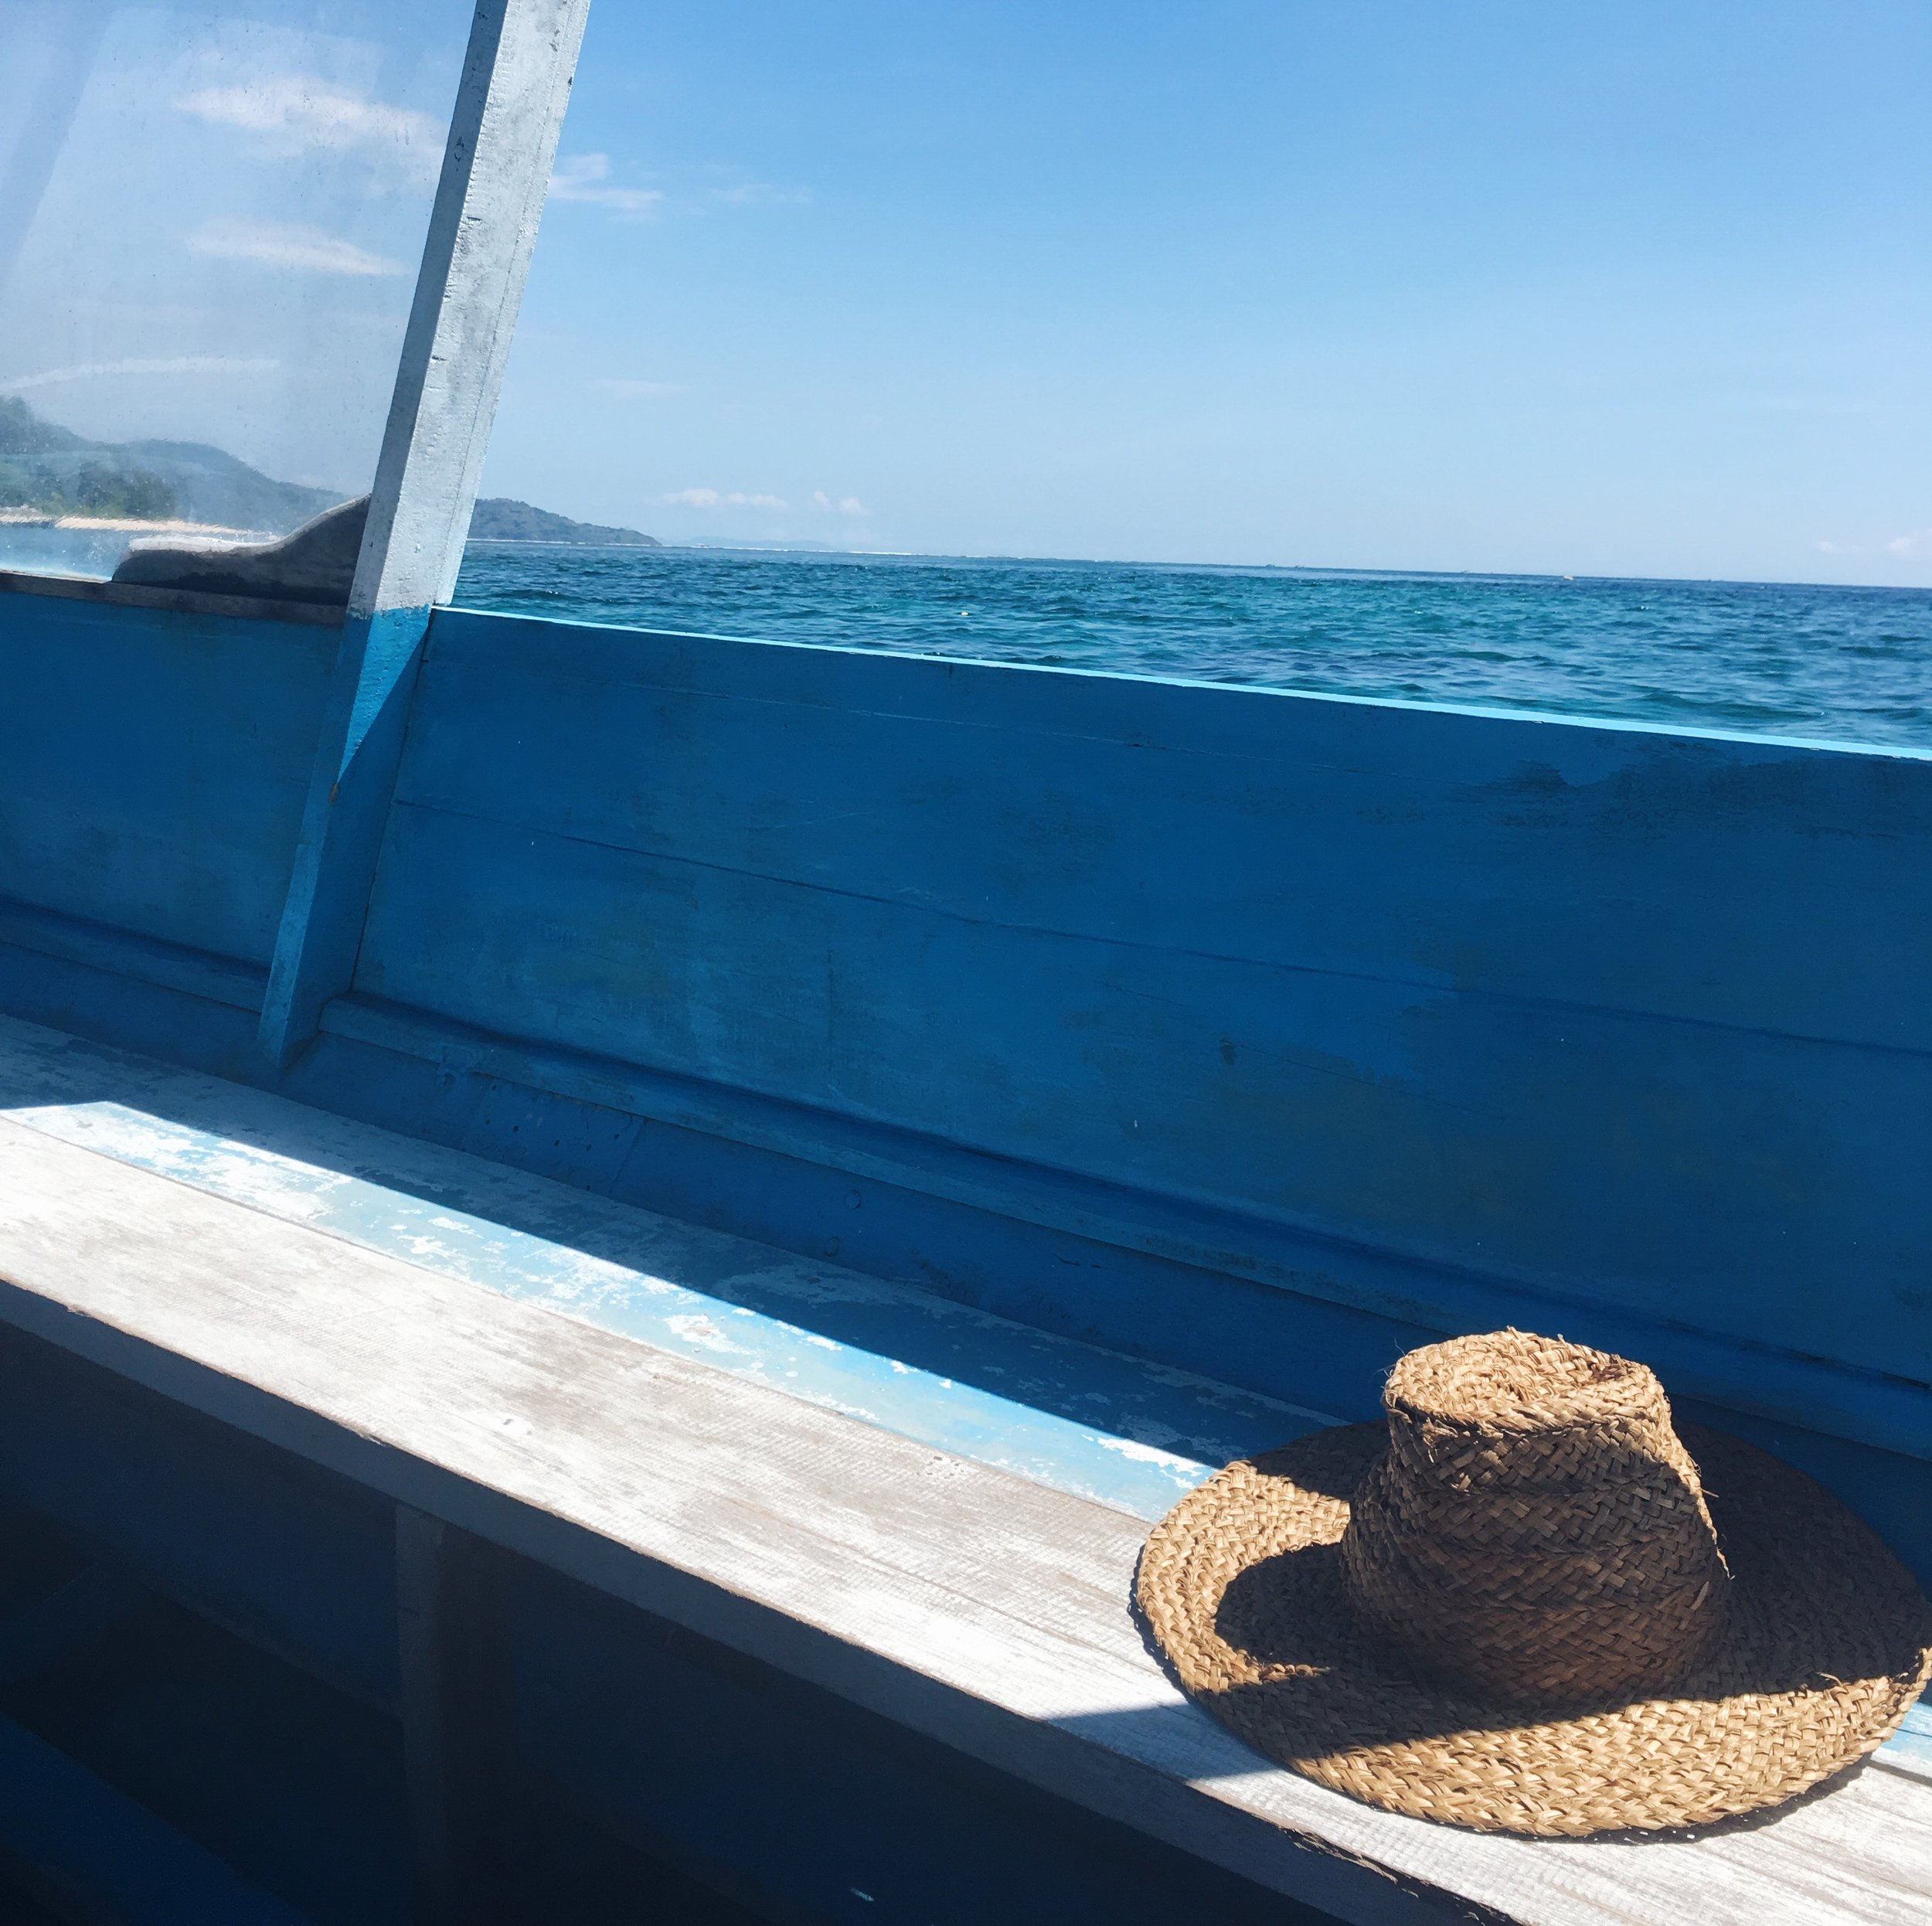 Private snorkeling trip around the Gili islands